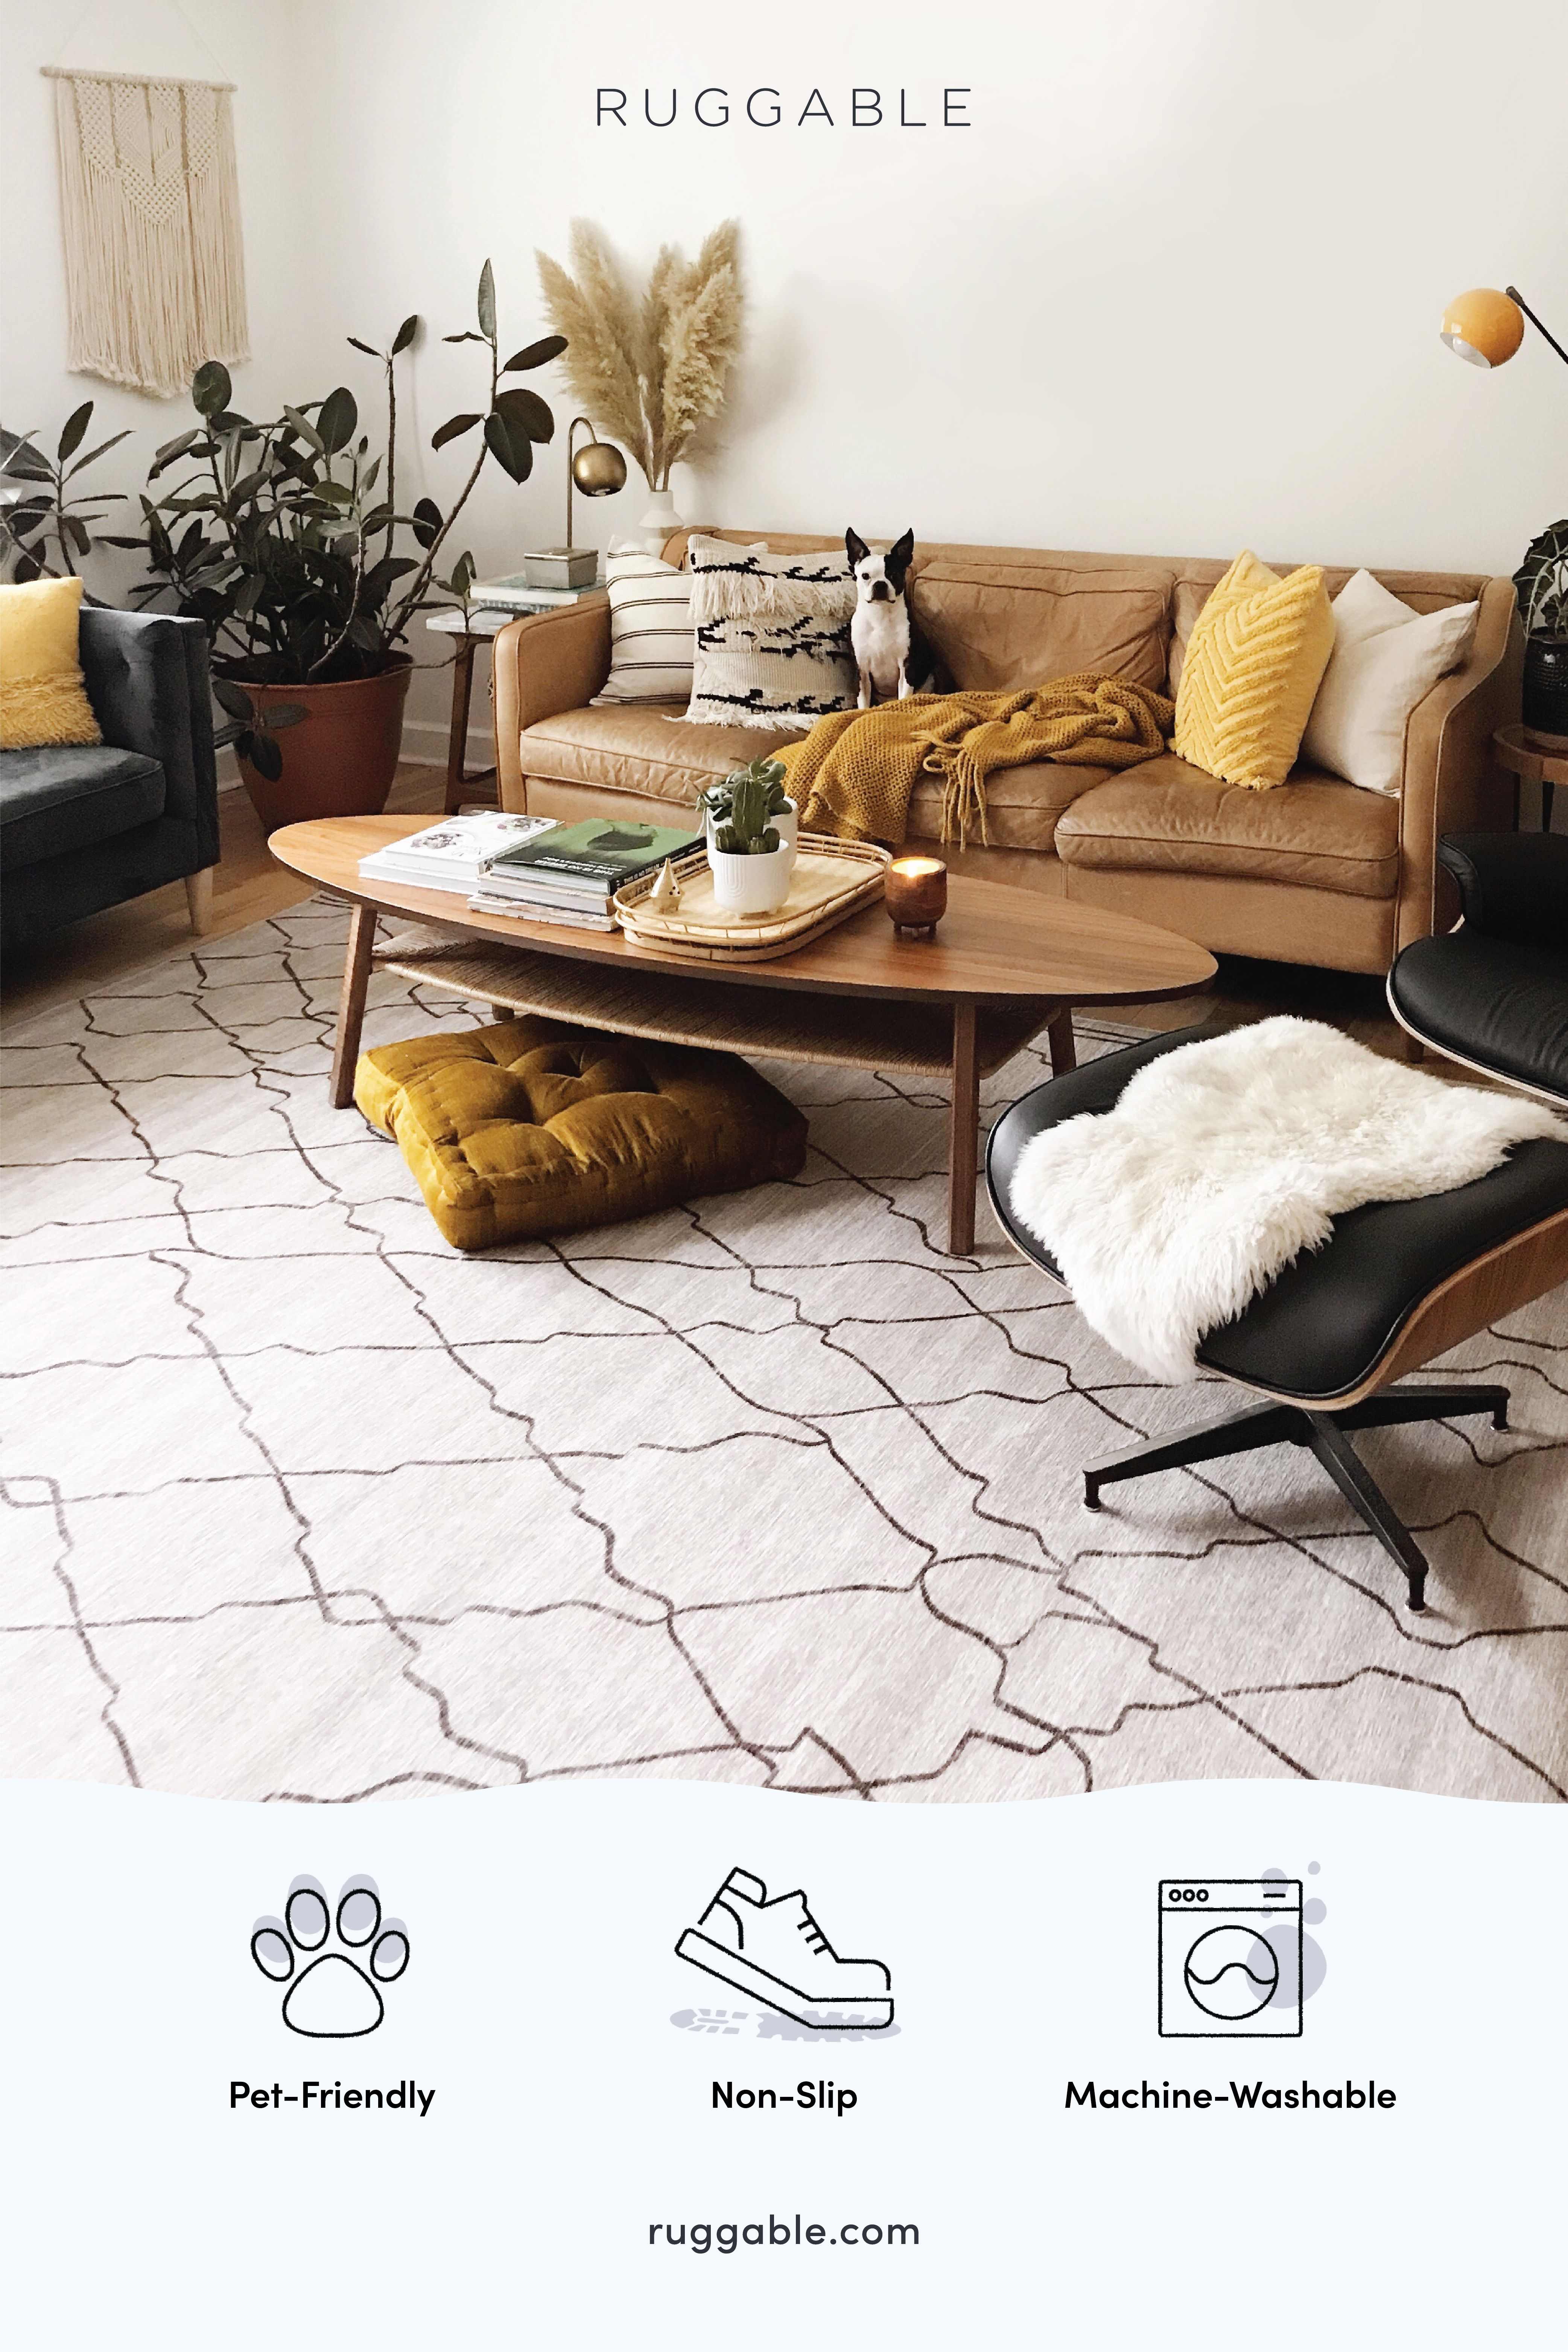 Ruggable Machine Washable Rugs Are Here Waterproof Non Slip And